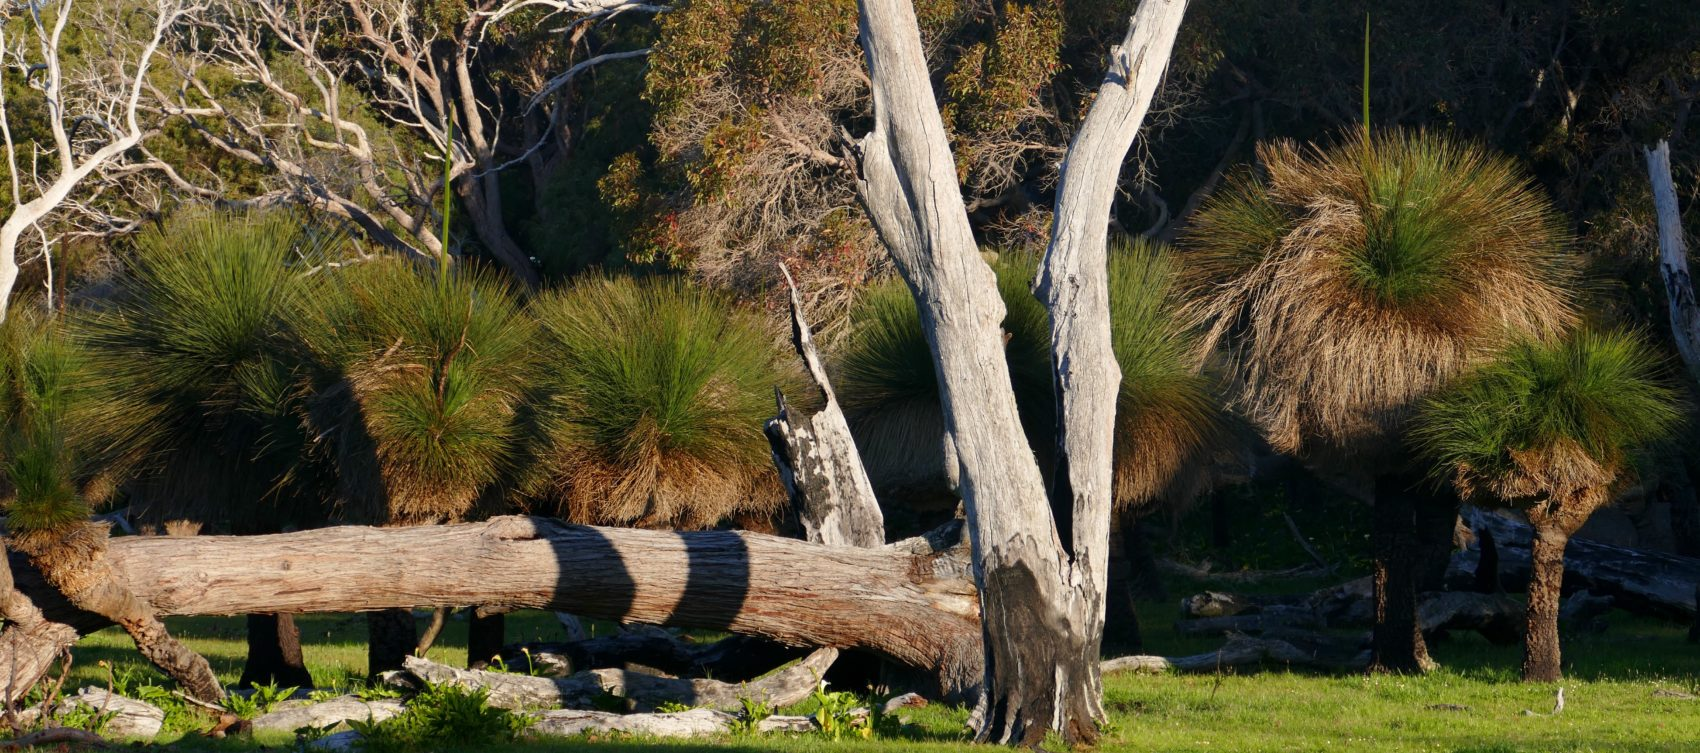 Grasstrees in paddock. All photos copyright Doug Spencer.